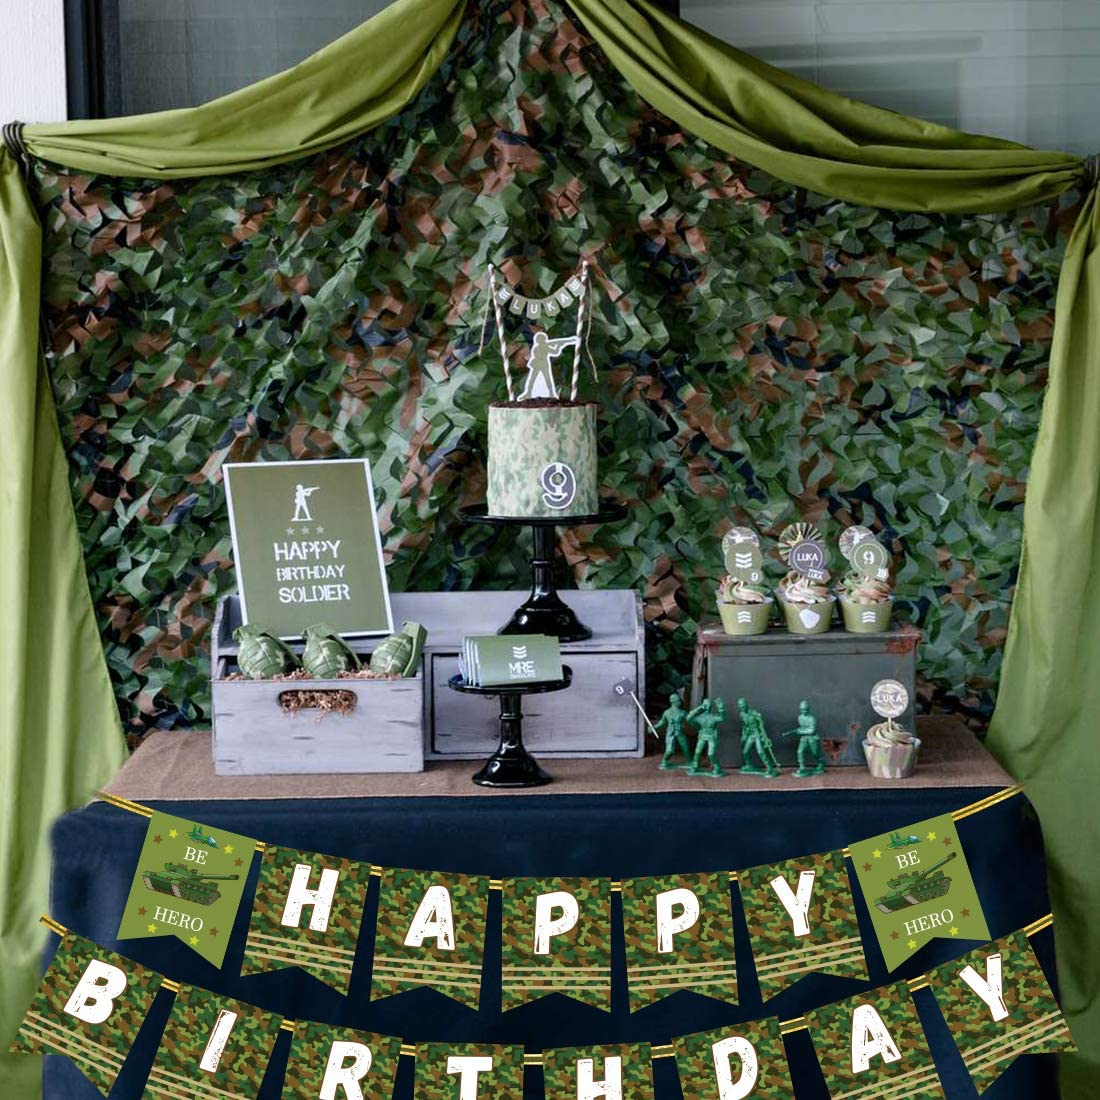 Camouflage Birthday Banner Party Decorations Camo Hero Army Soldier Birthday Party Bunting Banner Military Birthday Party Supplies